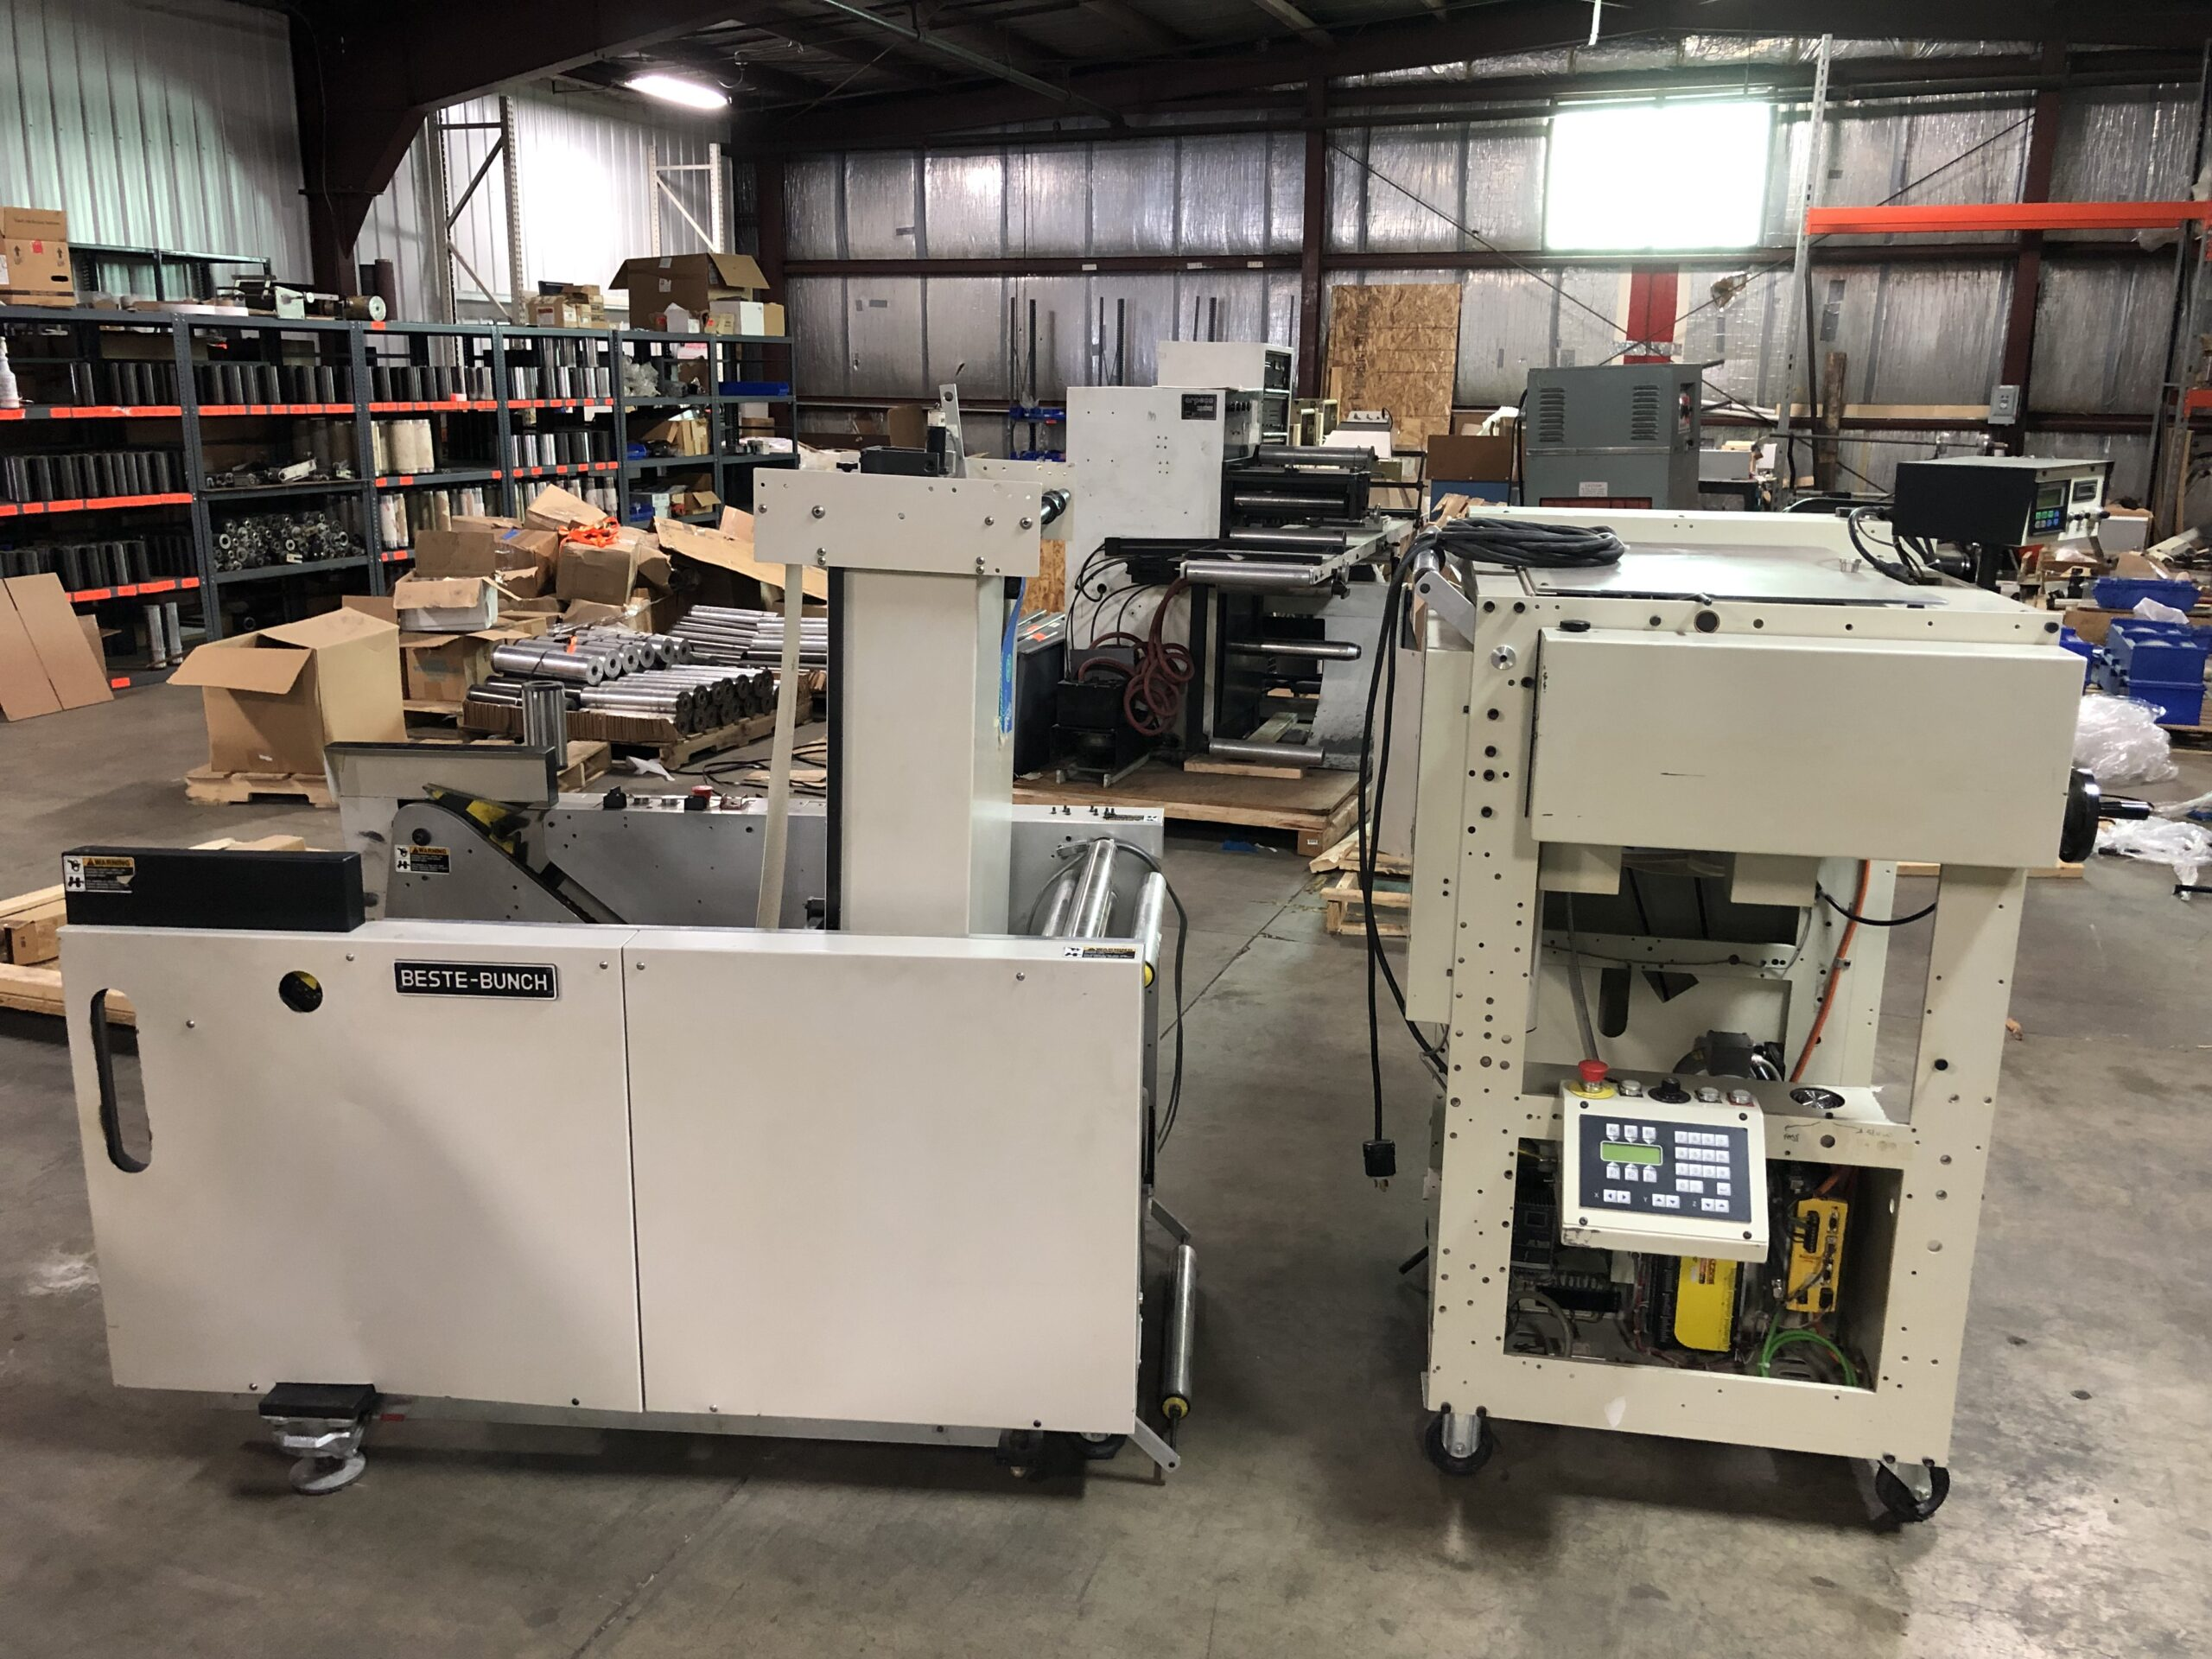 B Bunch Fan Folder - Used Flexo Printing Presses and Used Flexographic Equipment-3